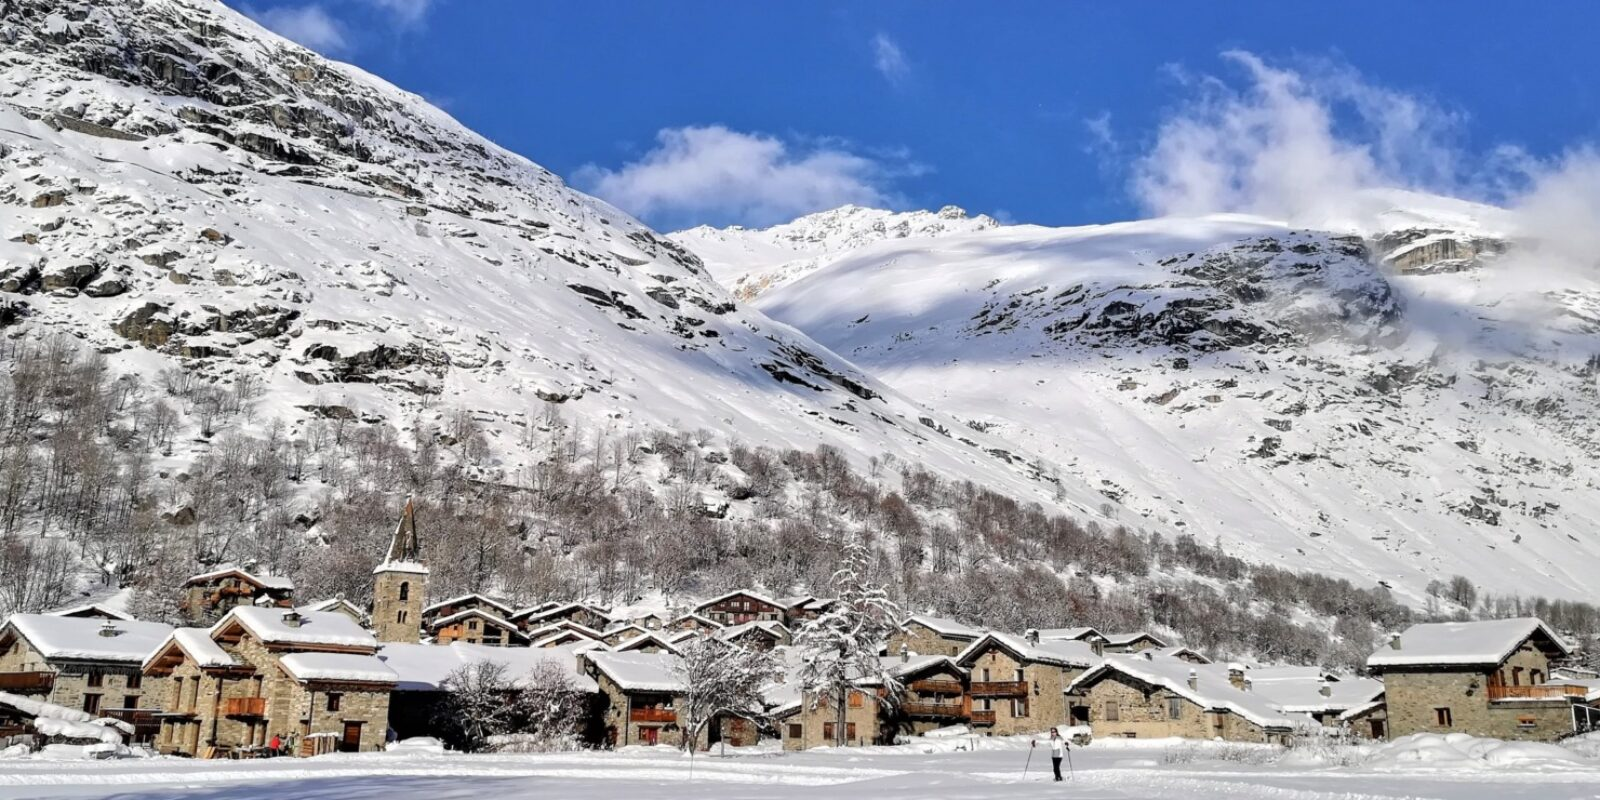 Bonneval-sur-Arc in Winter